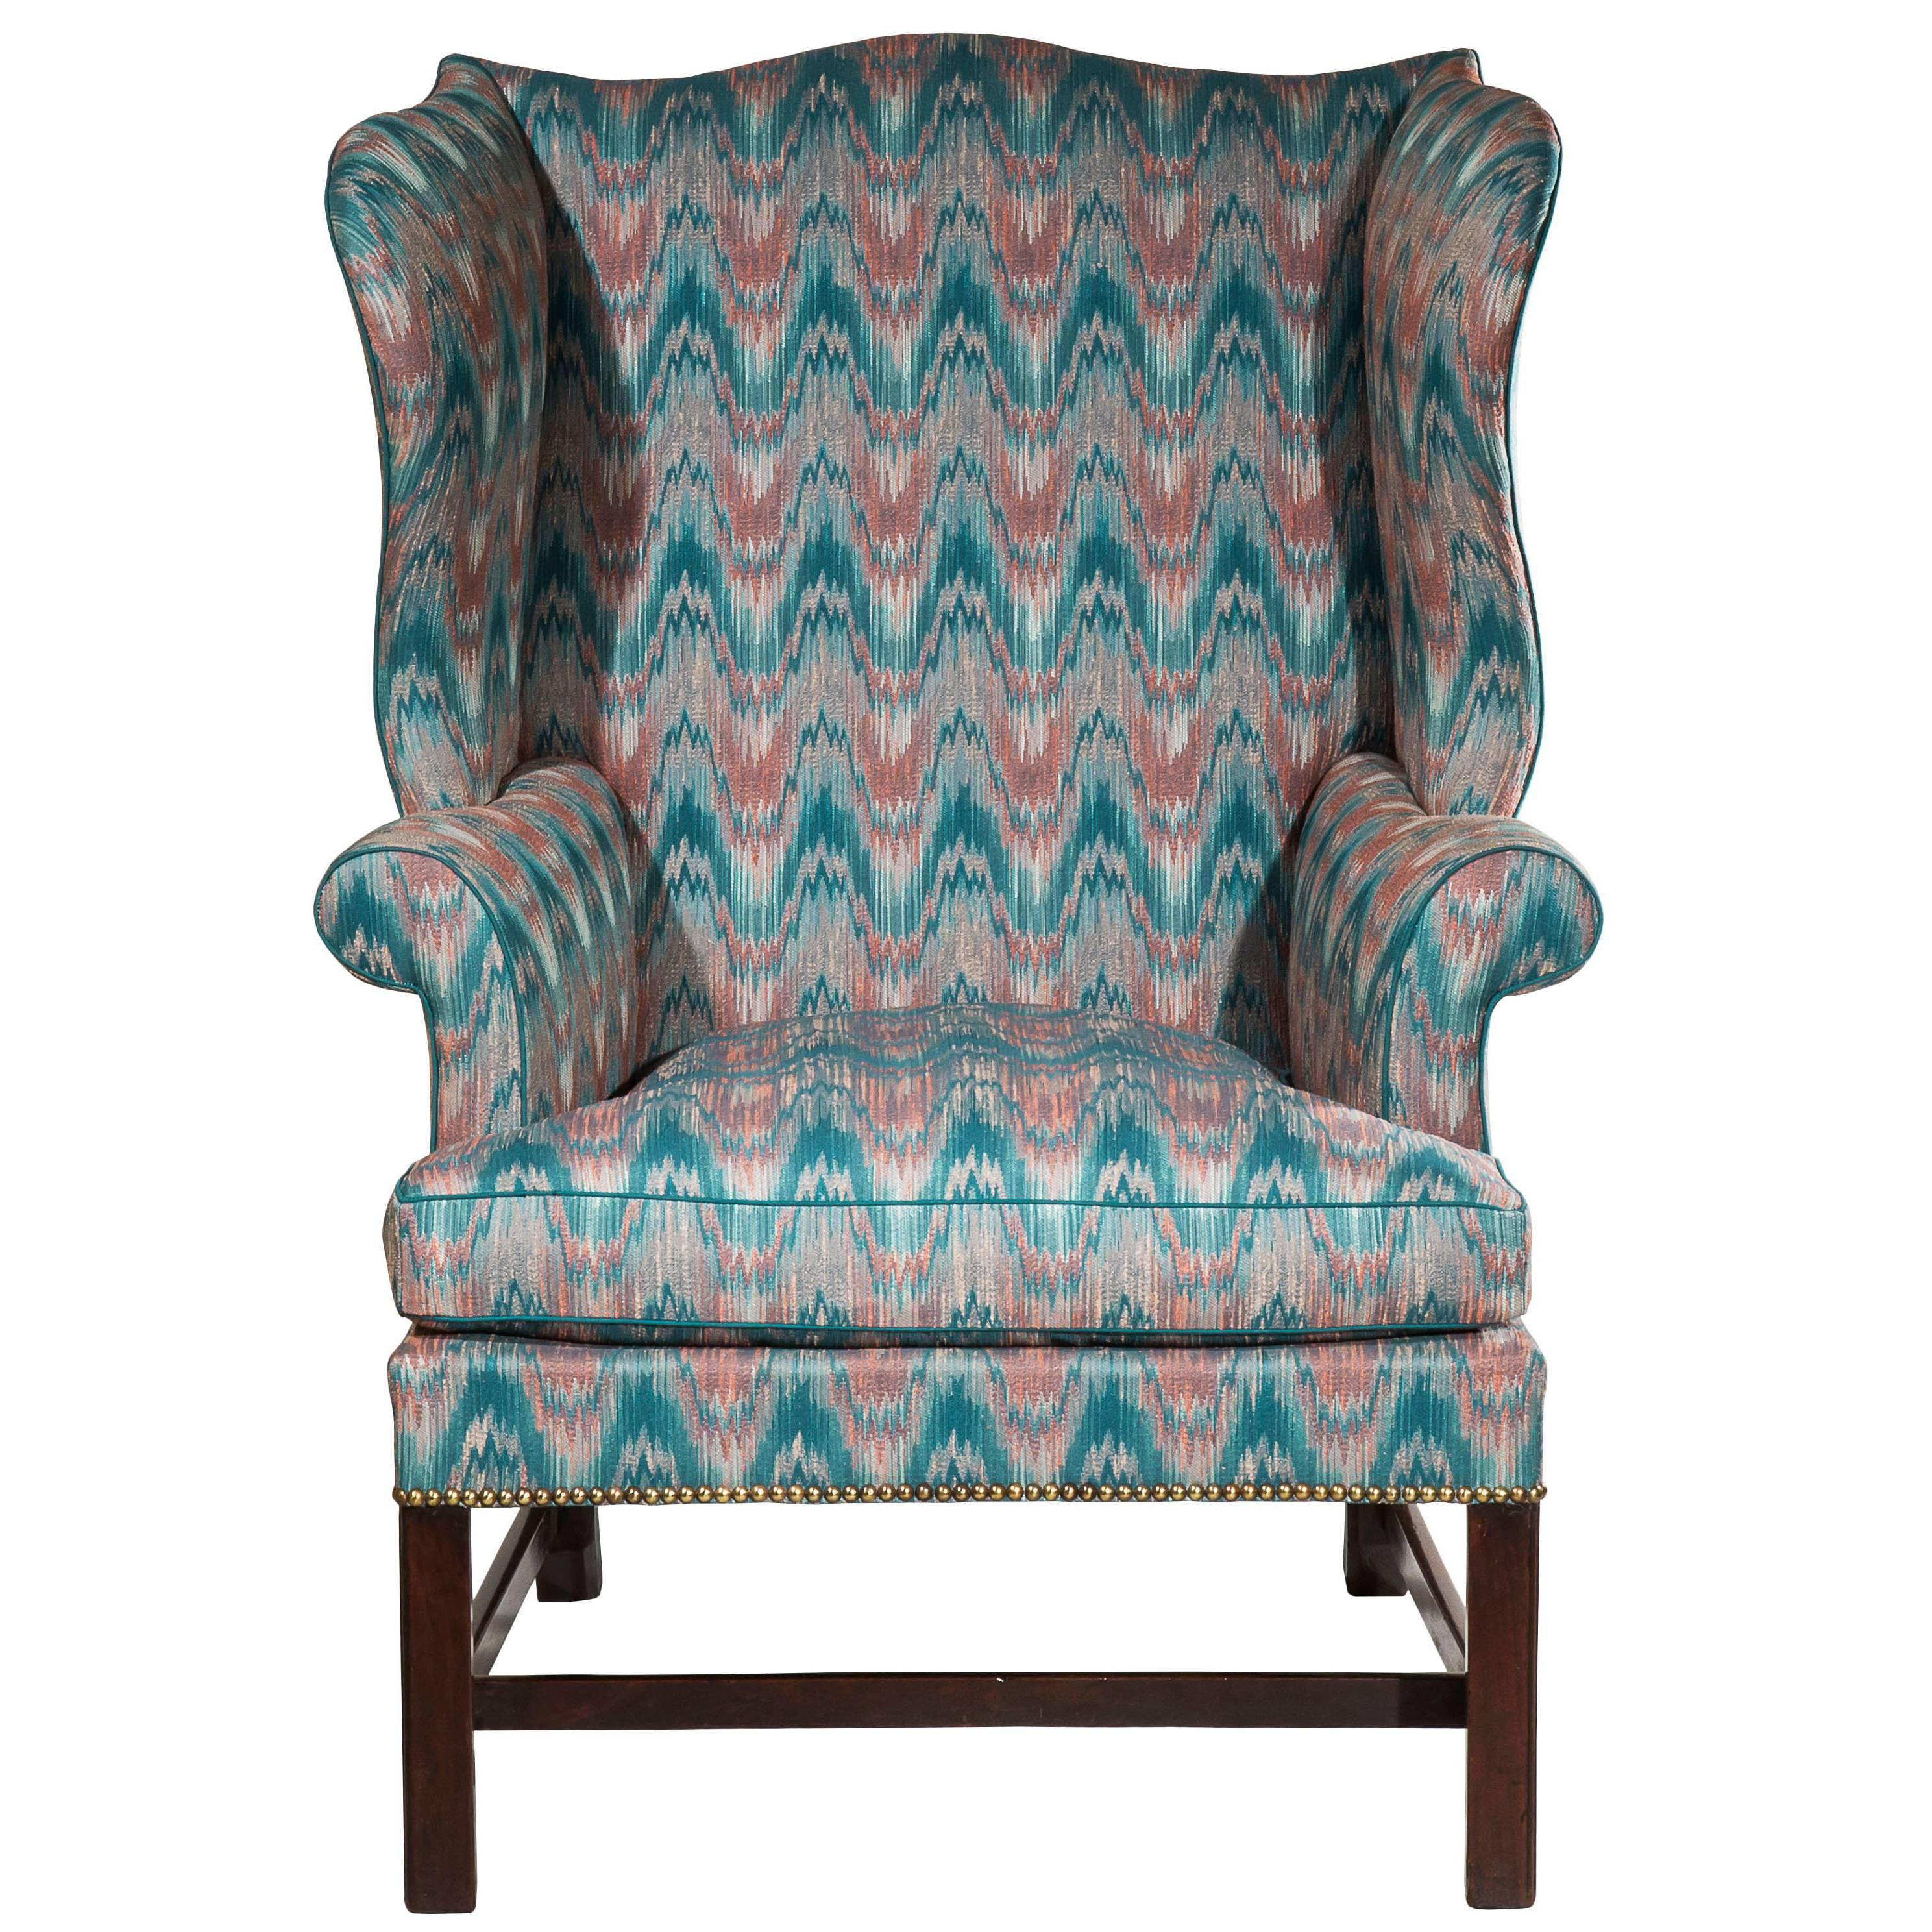 English 18th Century Chippendale Period Mahogany Wingback Armchair